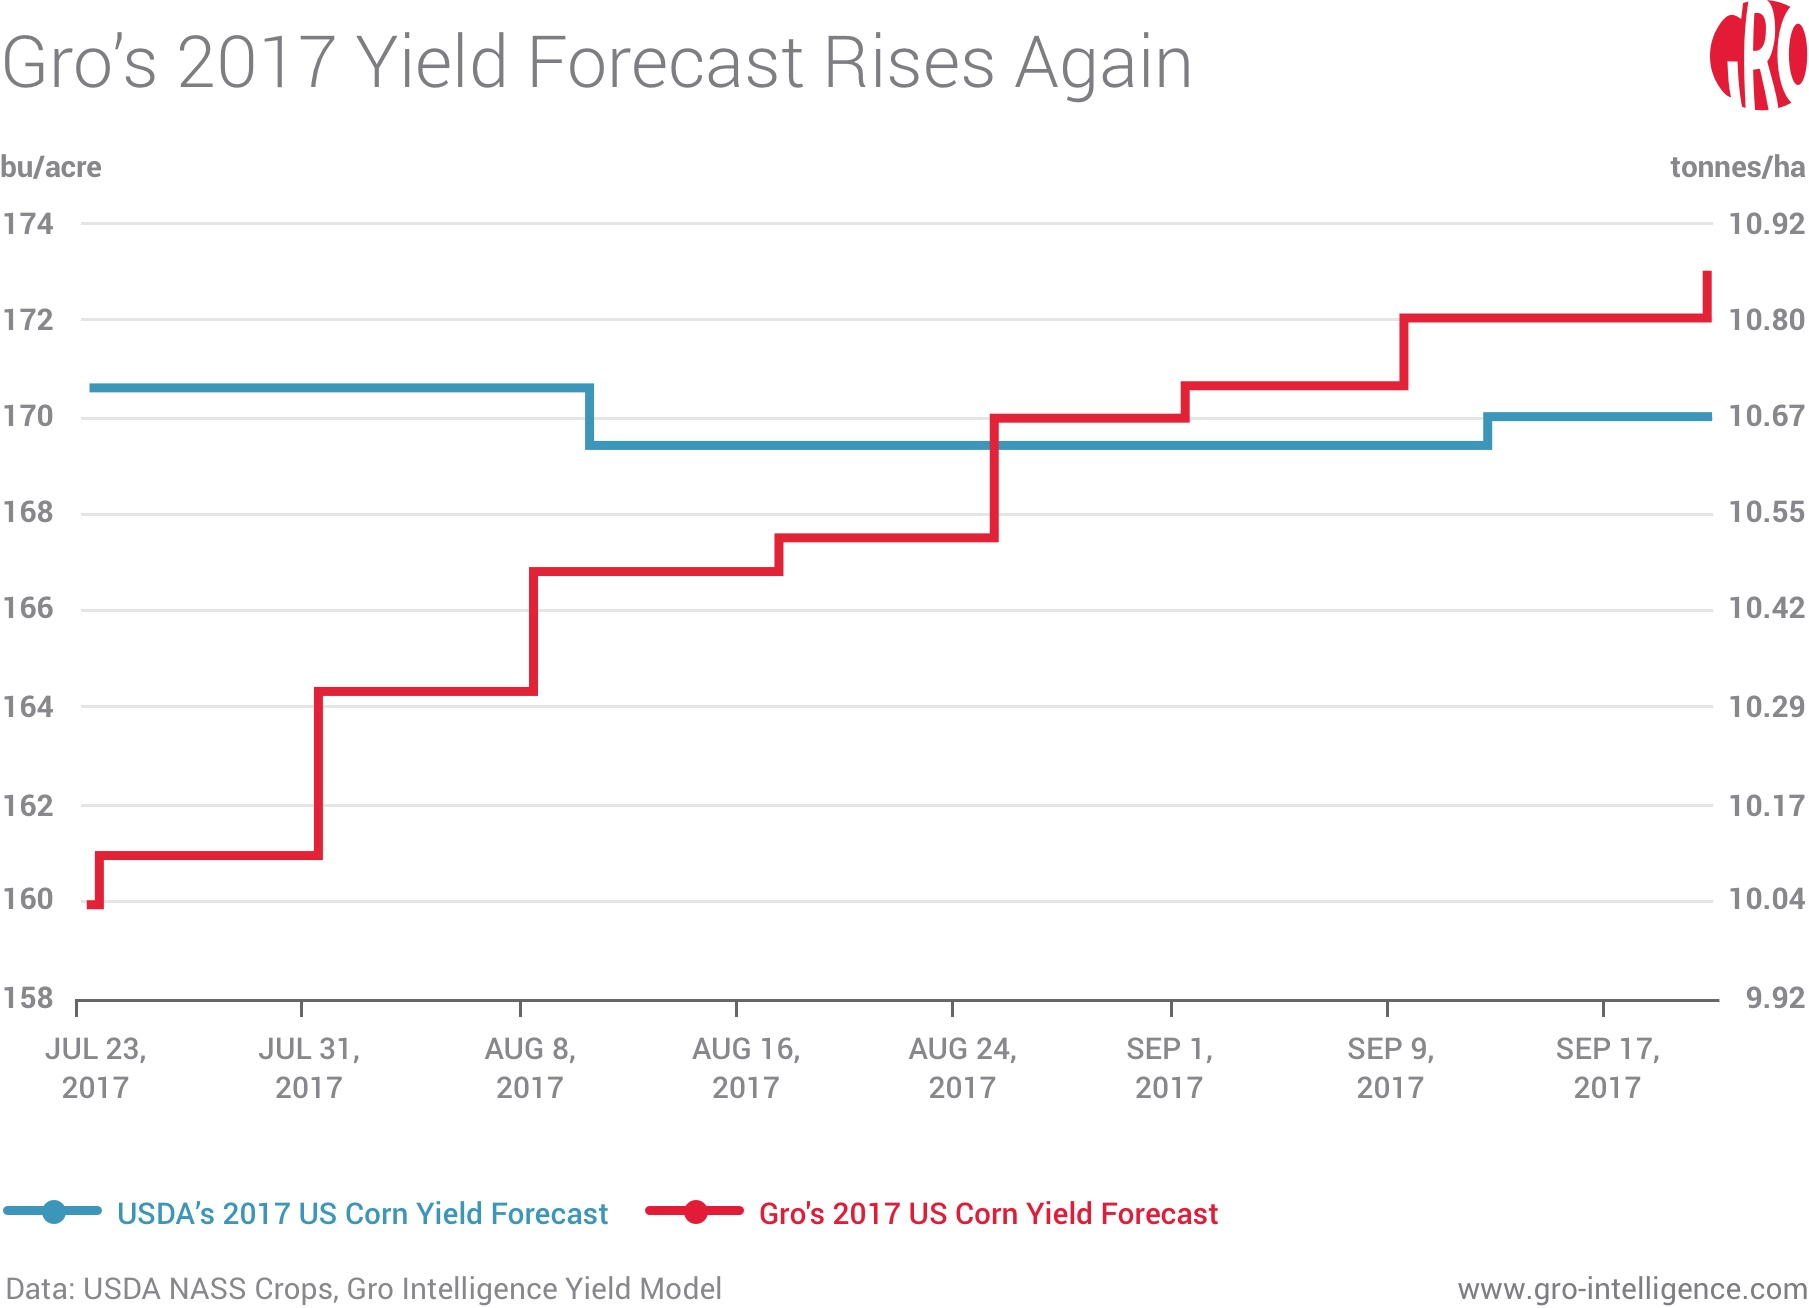 Gro's 2017 Yield Forecast Rises Again